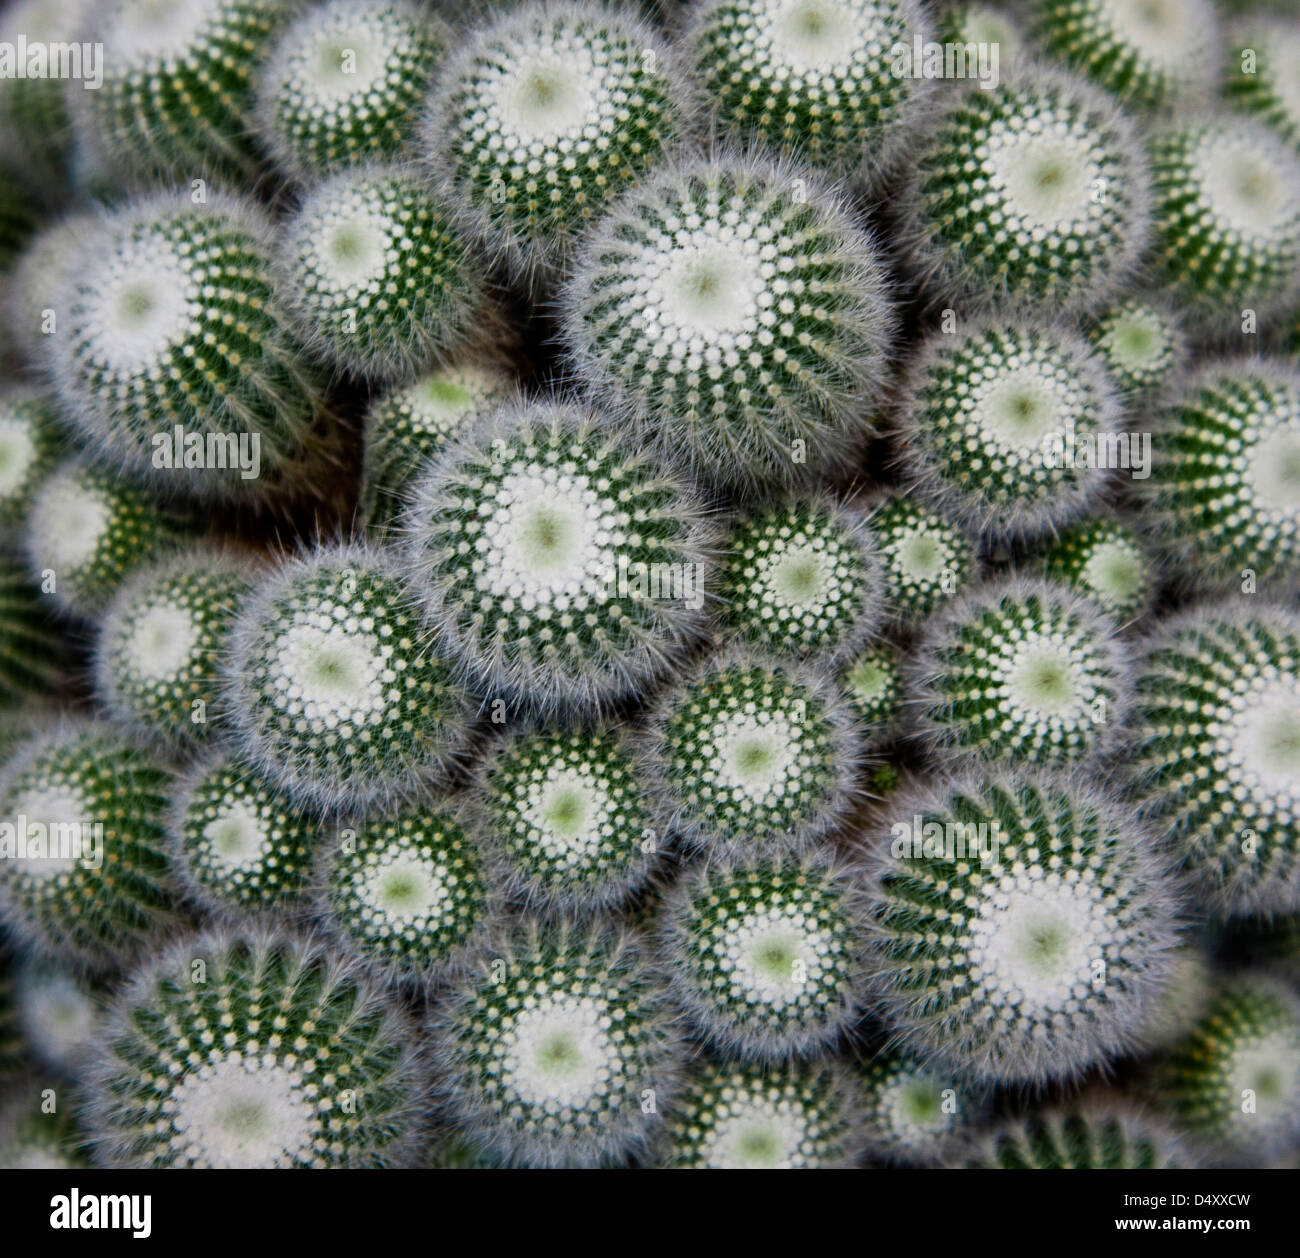 unique close up abstract pattern of cactus plants with